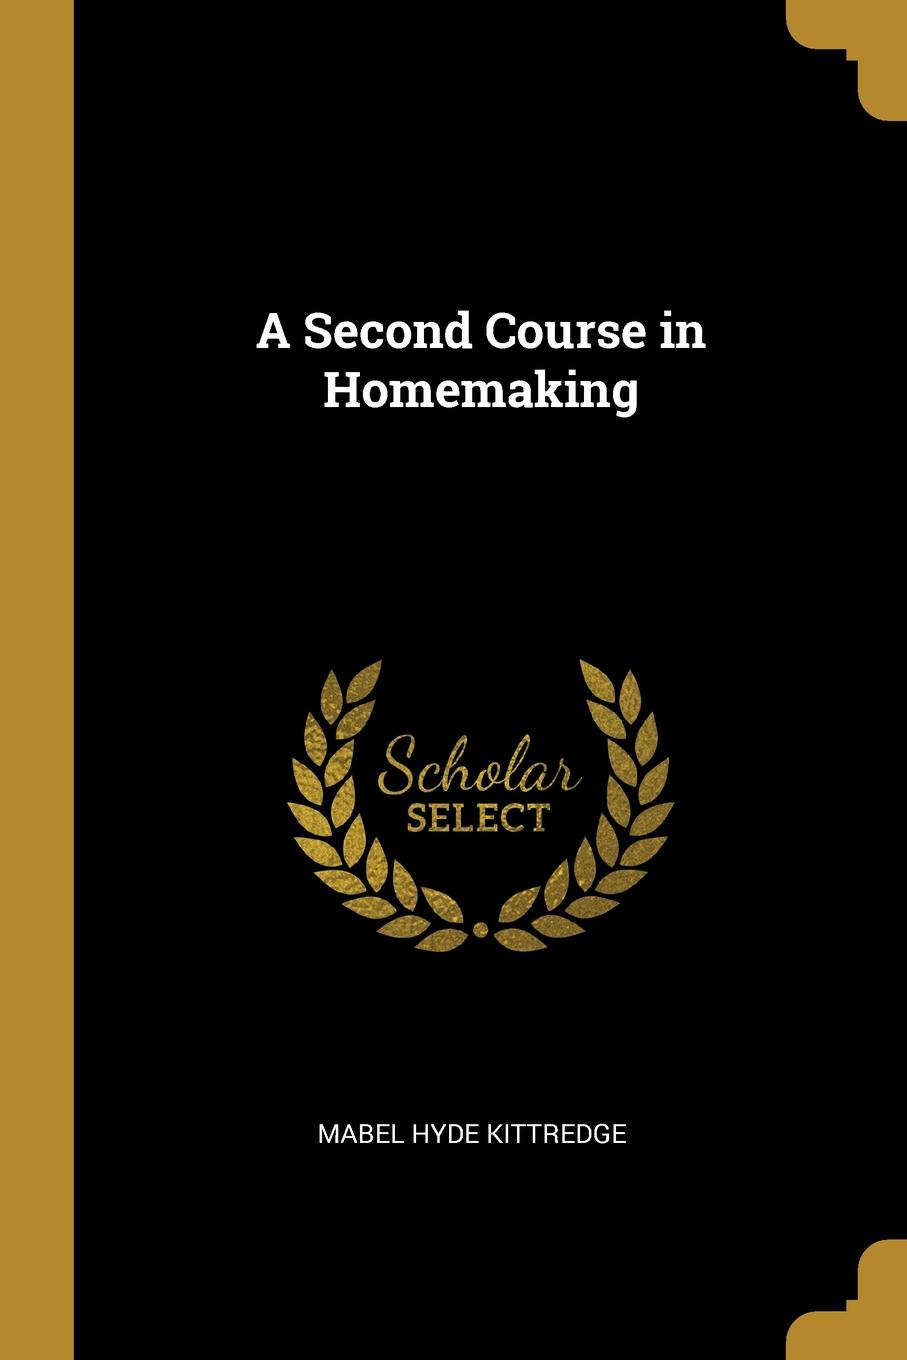 Mabel Hyde Kittredge. A Second Course in Homemaking